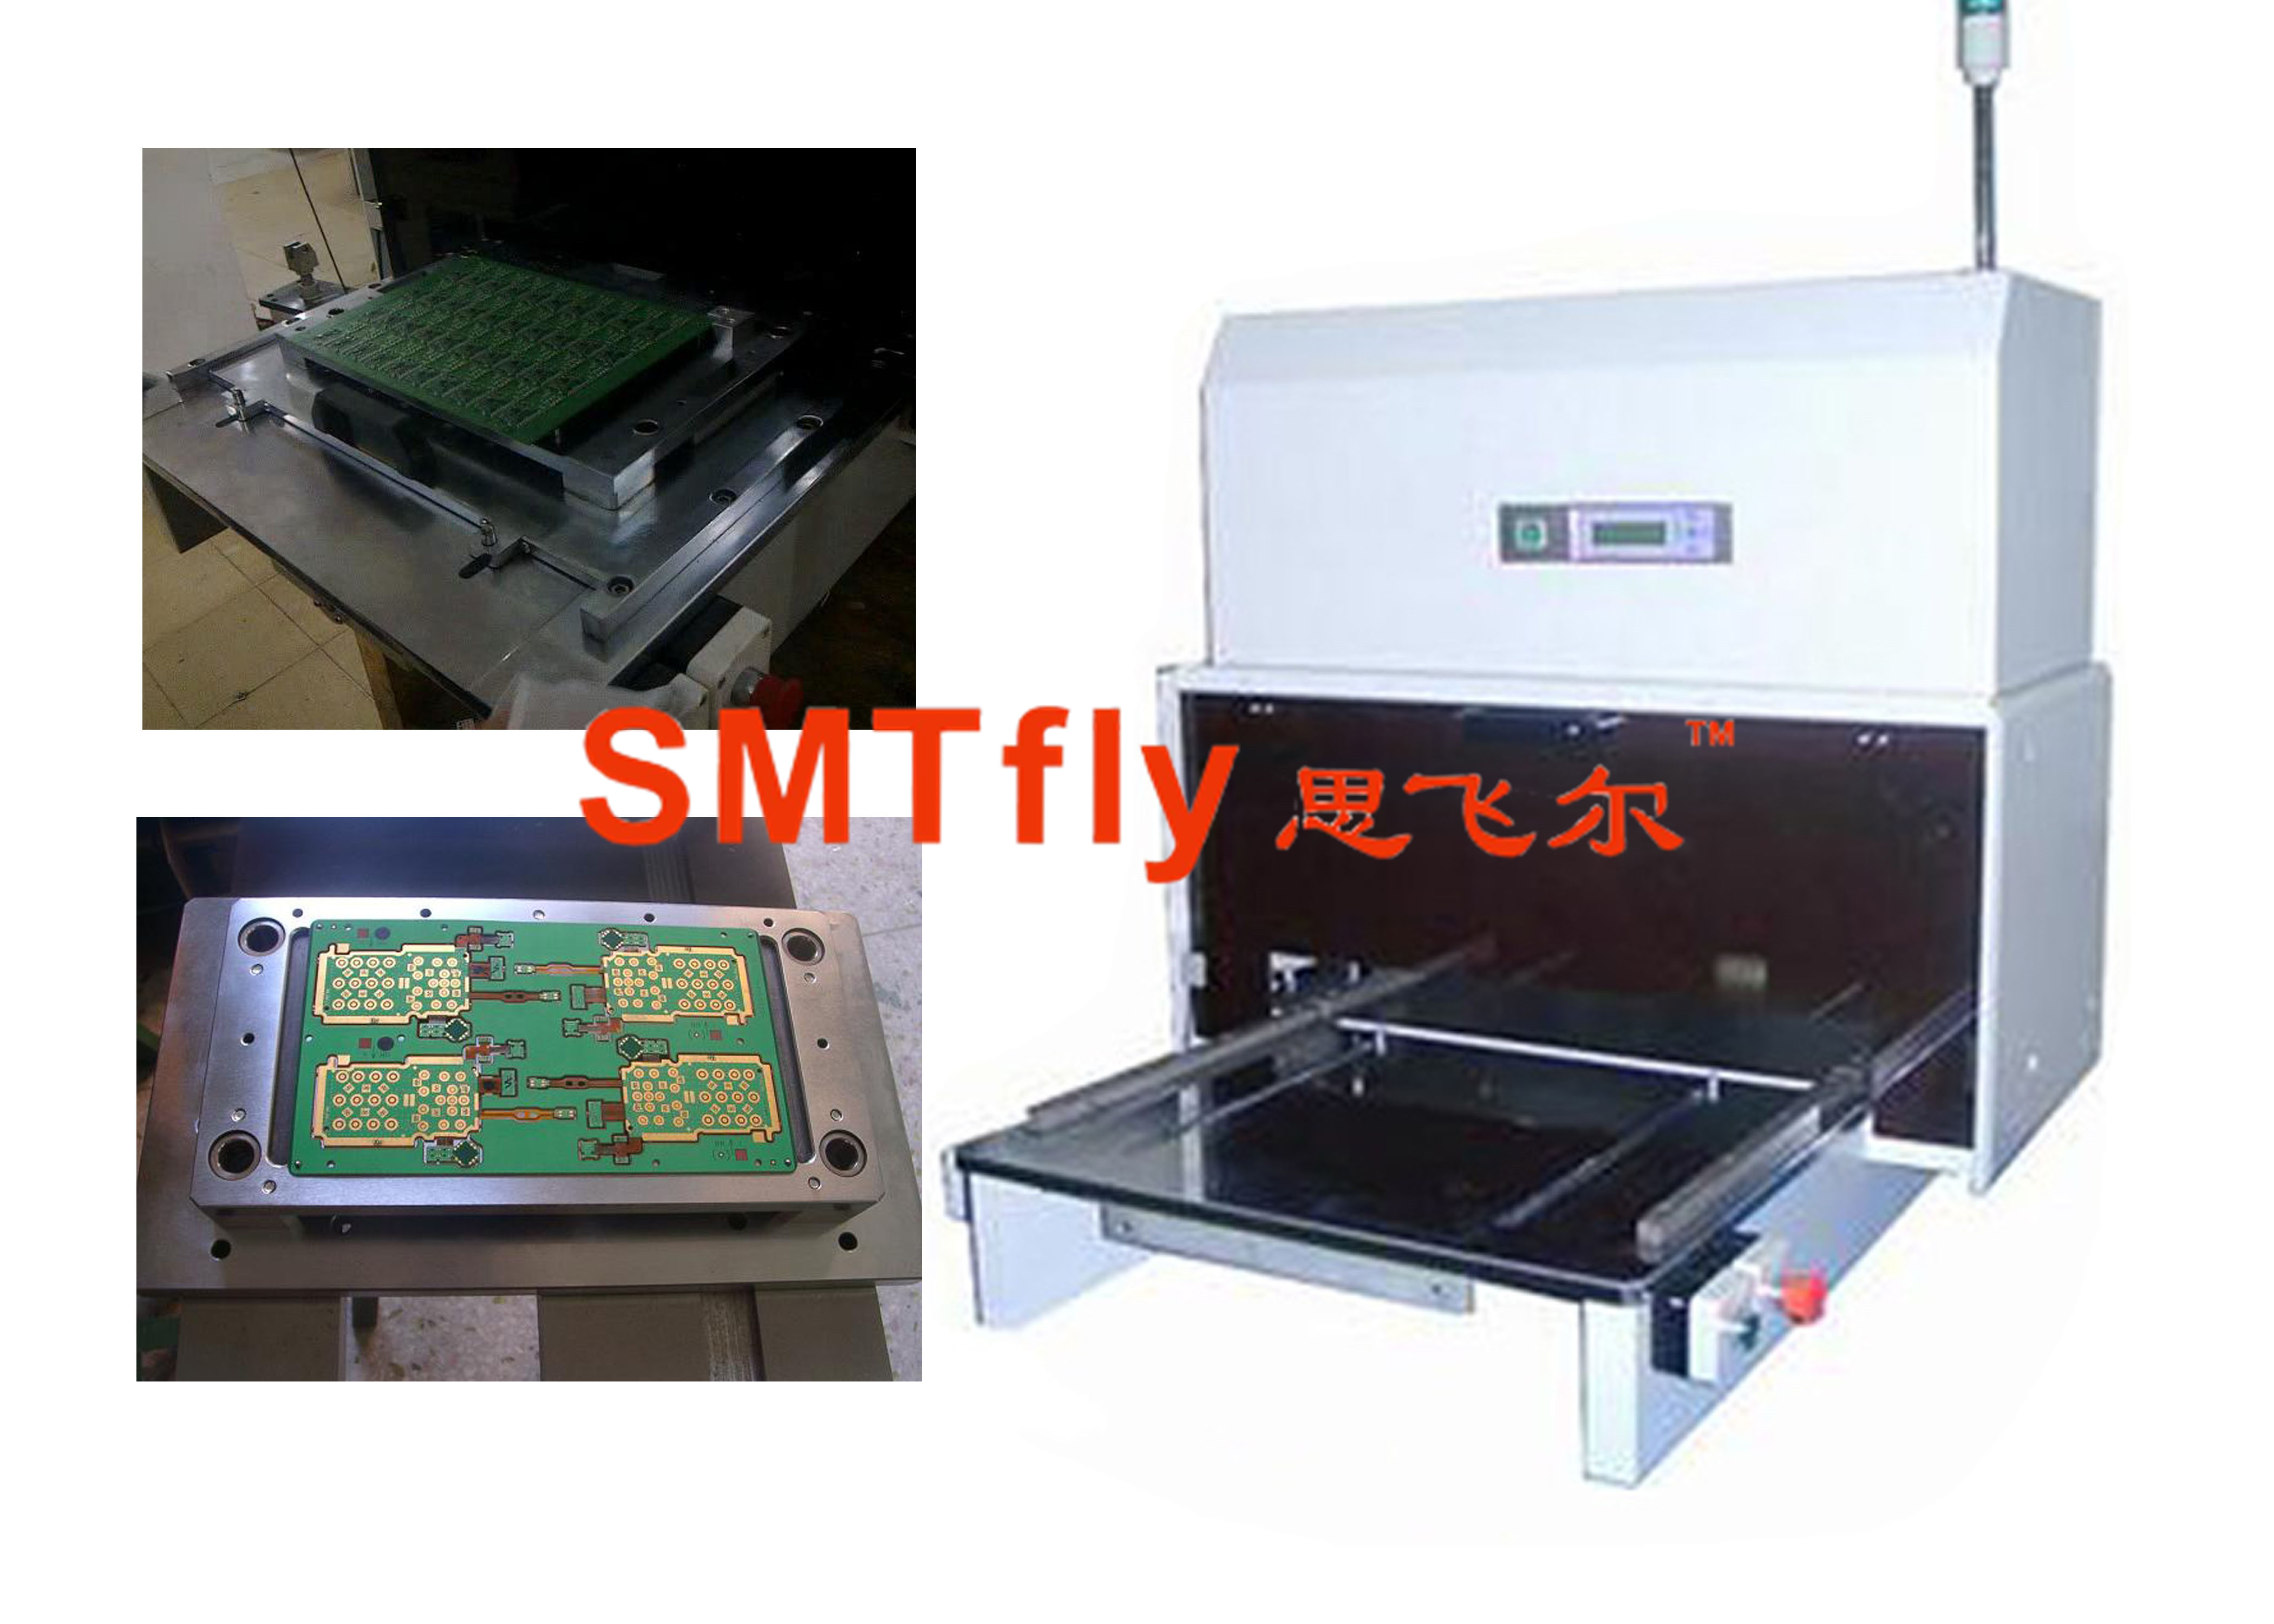 LED Die Cutting Equipment,SMTfly-PL